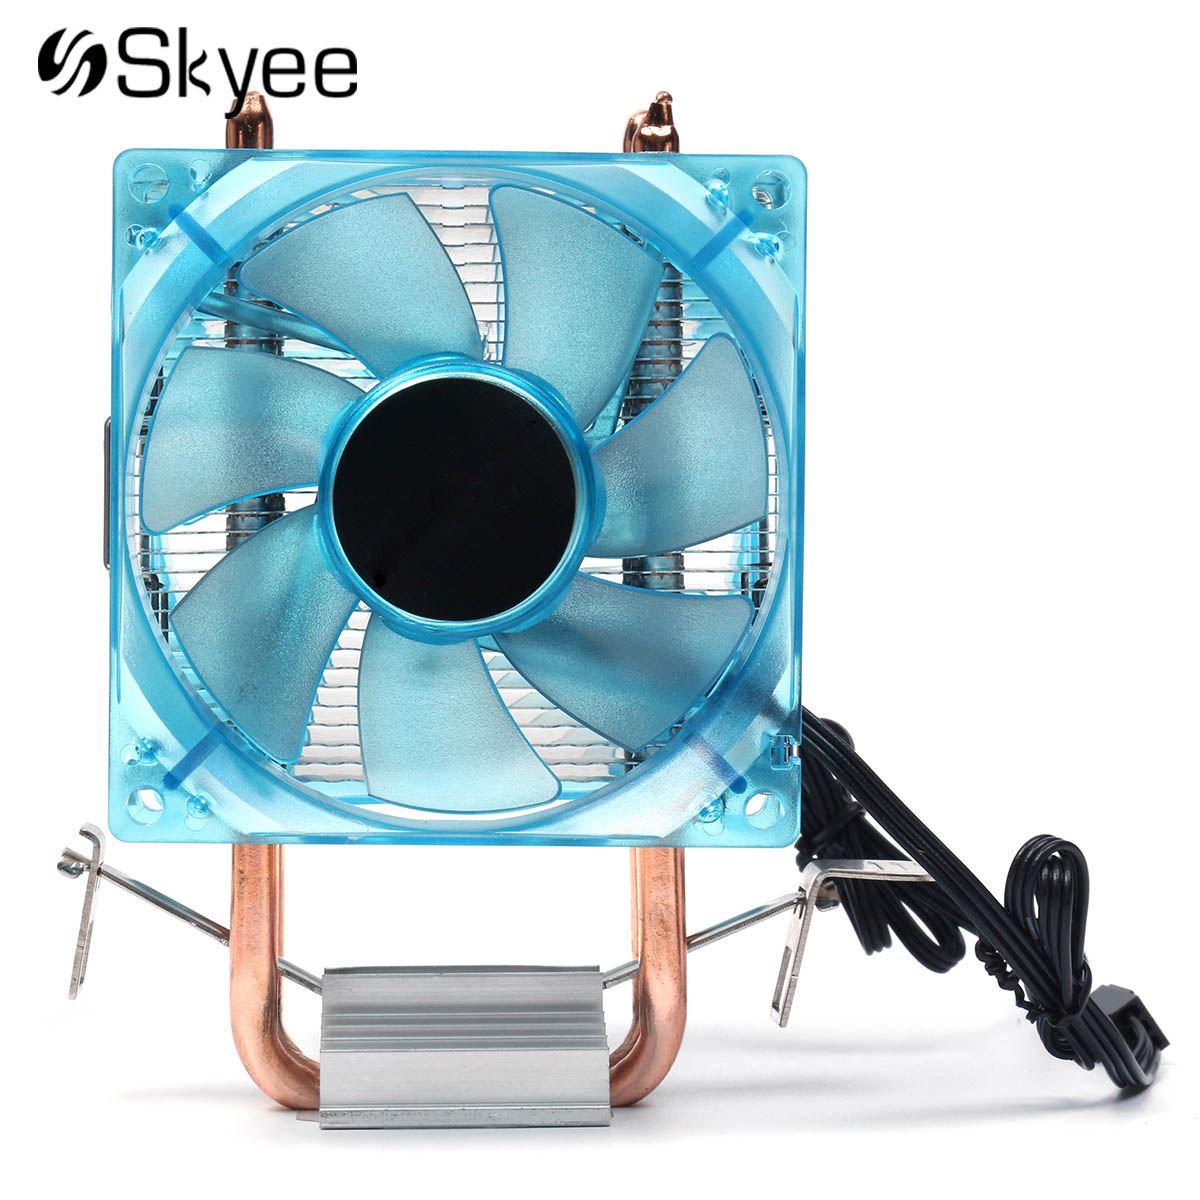 2018 LED CPU Cooling Fan 90mm Dual Copper Pipe Aluminum Heatsink Cooler Cooling Fan for AMD FM1 AM2 + AM3 +Intel 775 1155 1156 new pc cpu cooling fan cooler heatsink for intel lga775 am2 am3 754 939 940 c77 dropship